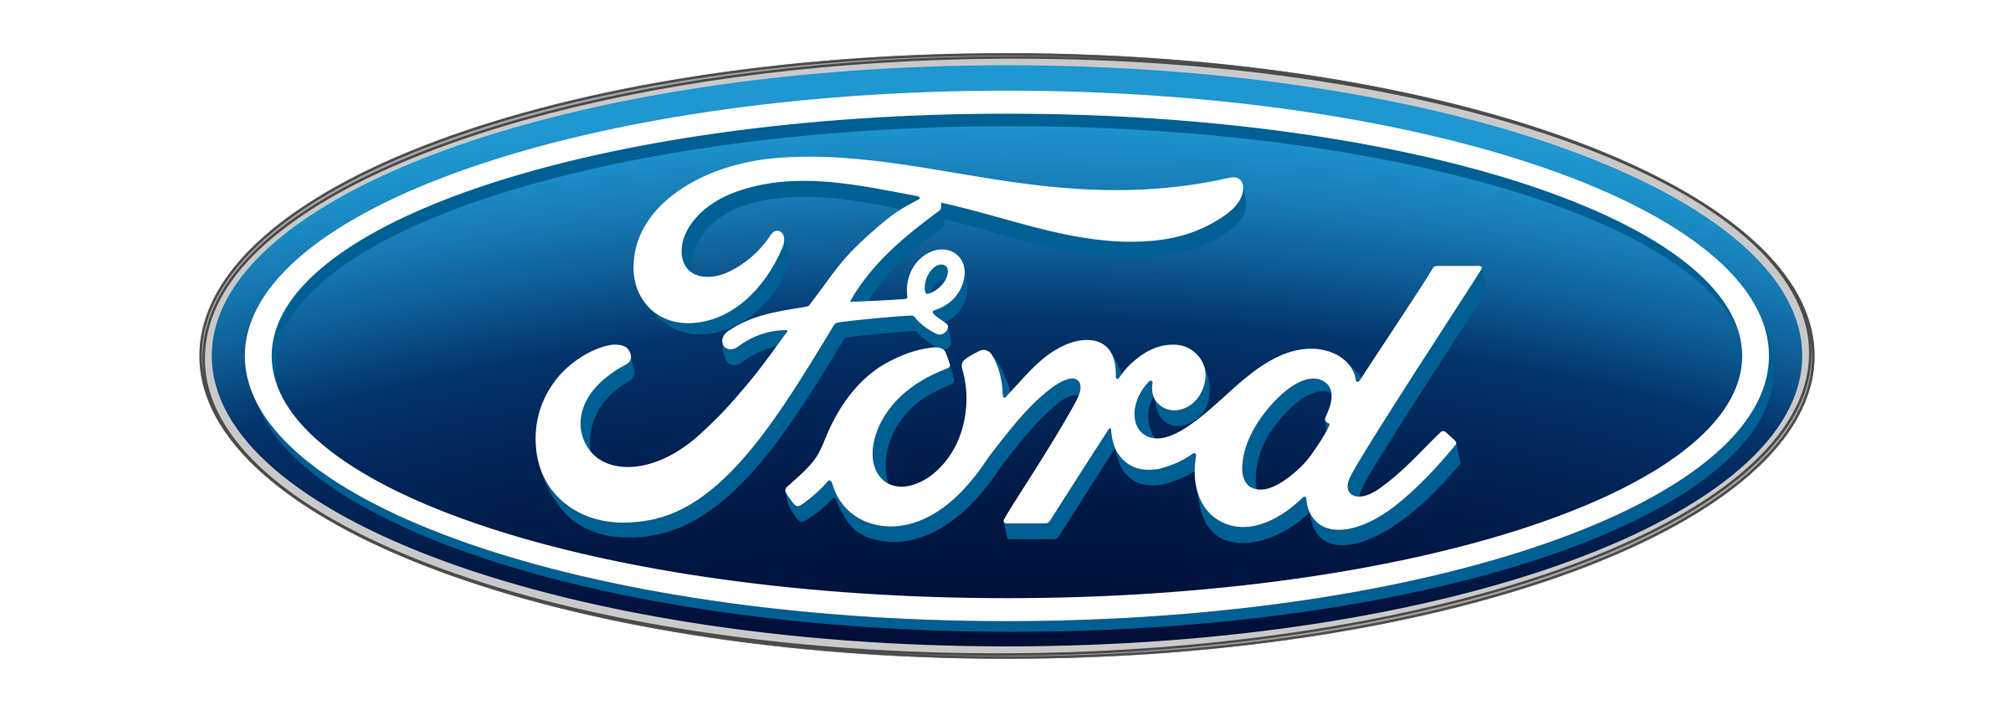 Ford logo letters png. Meaning and history latest